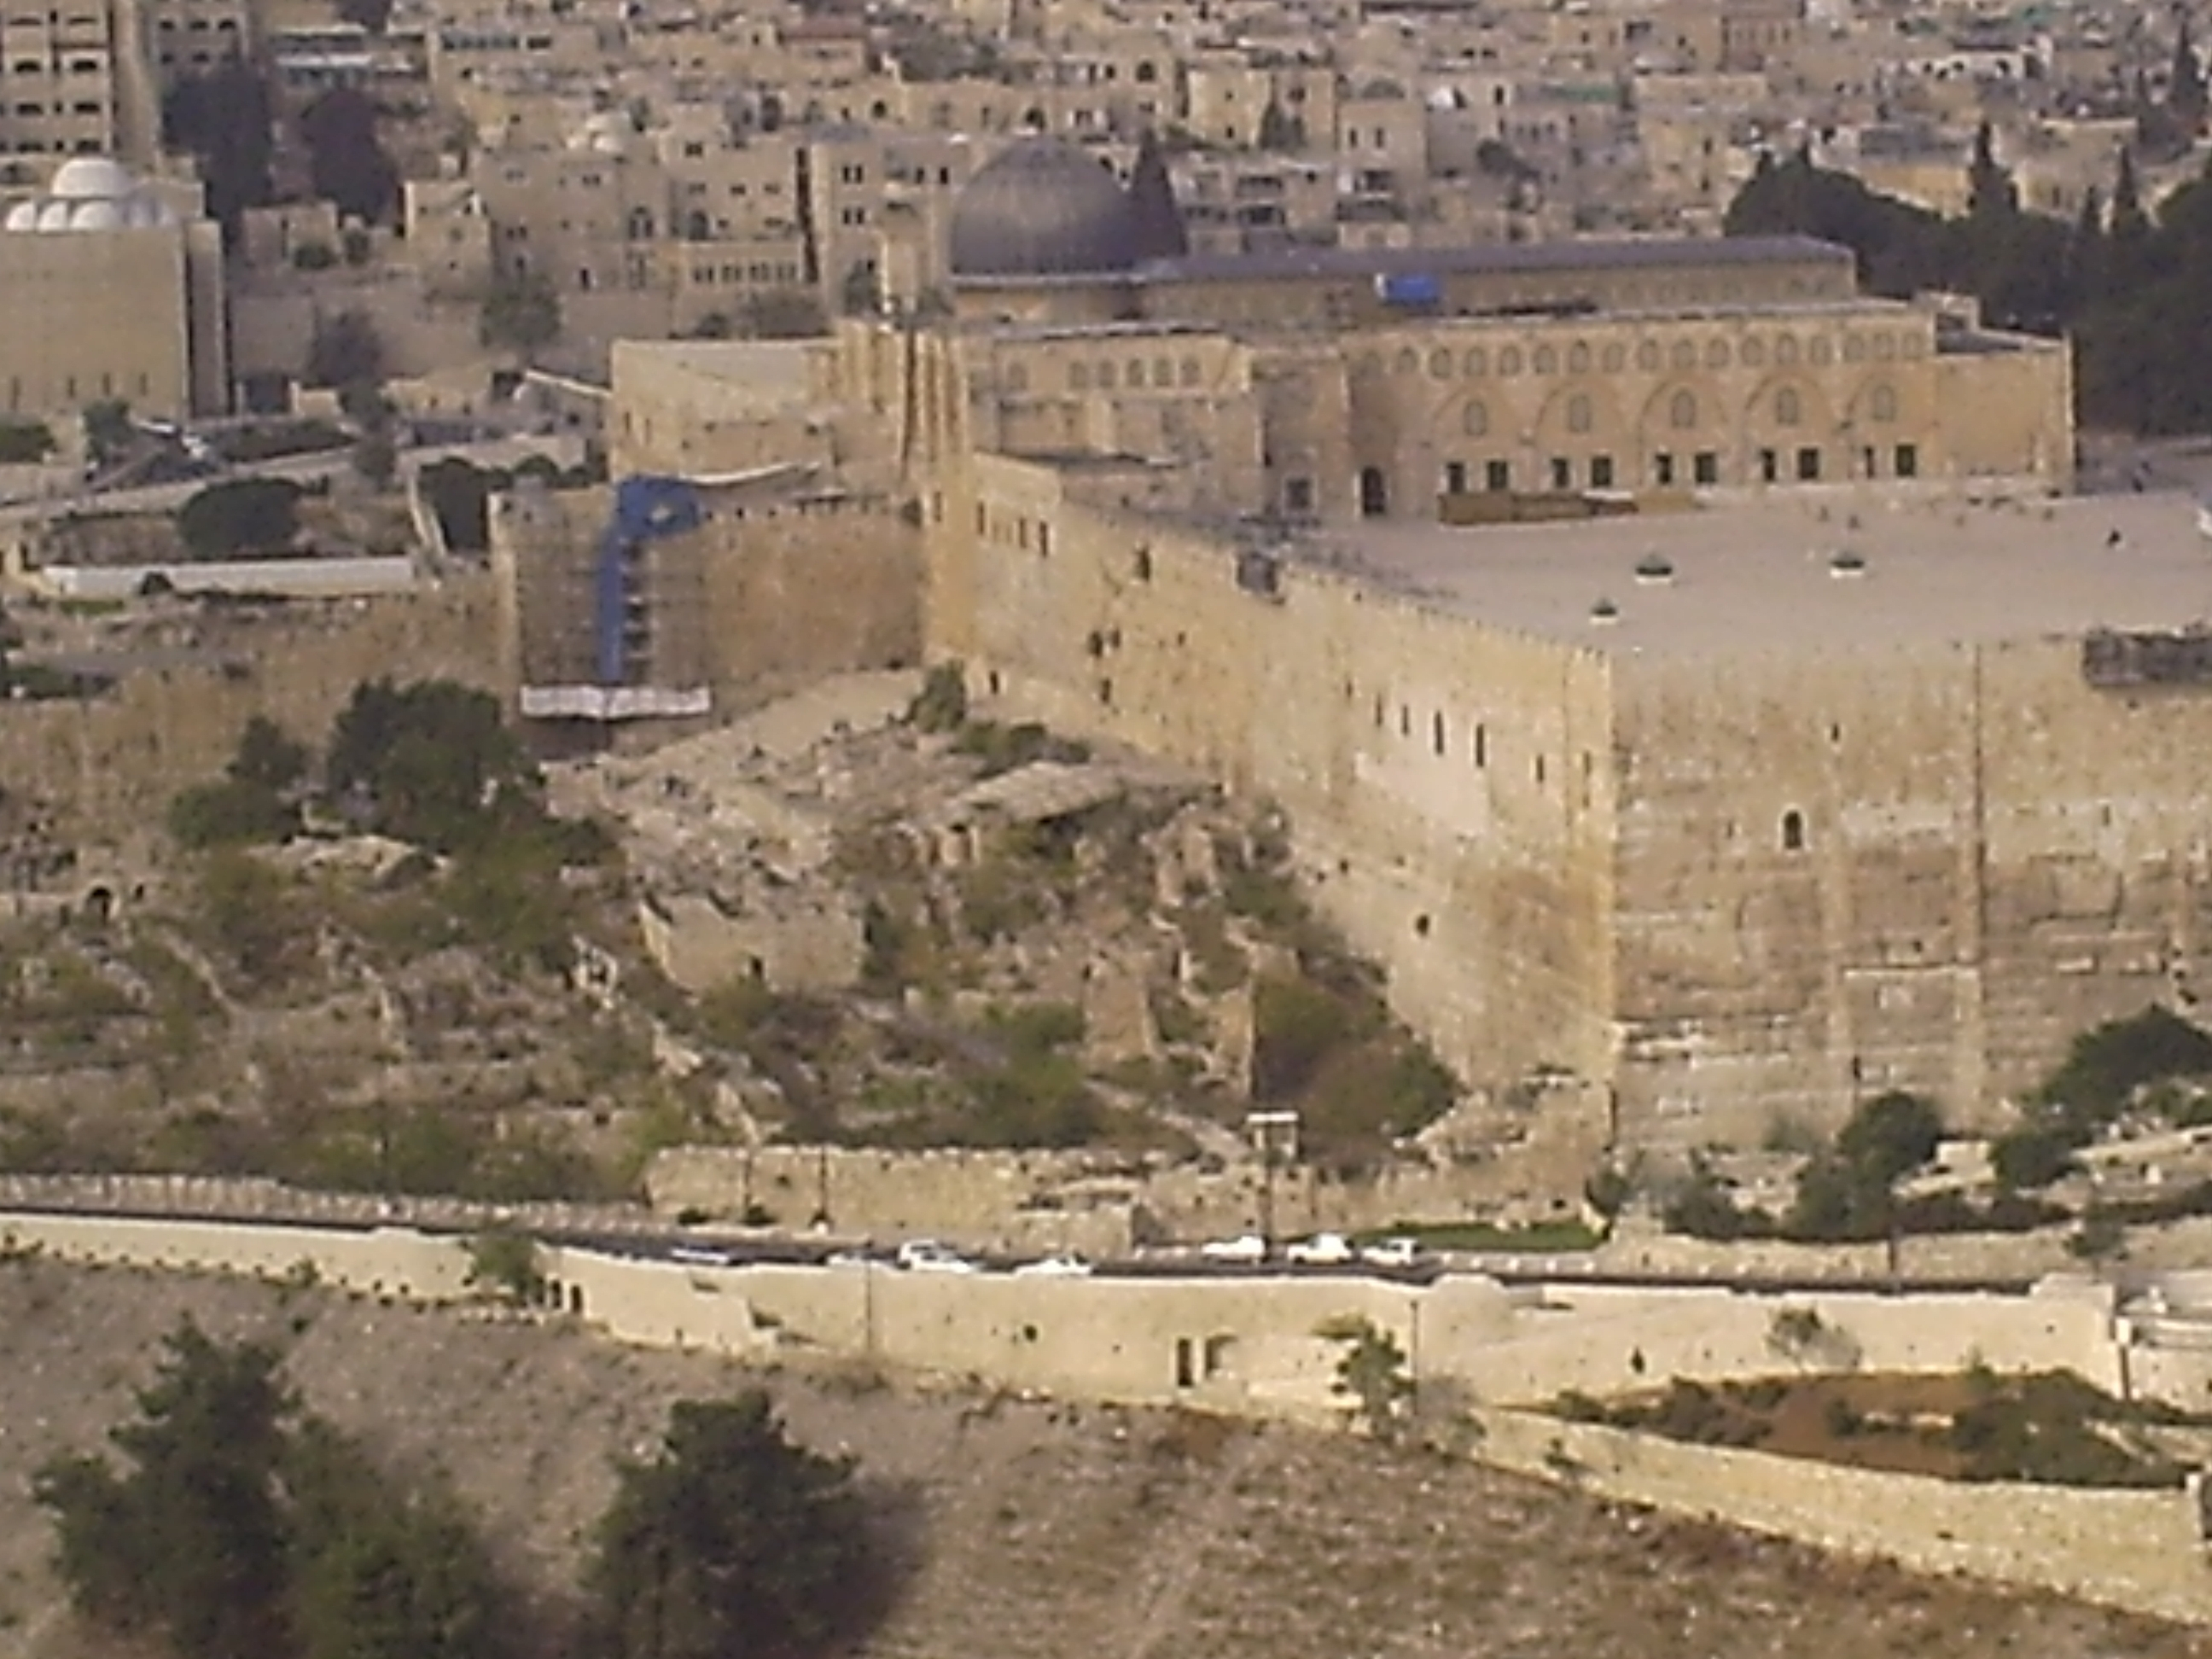 Ruins of the area of the temple cleansed by Jesus